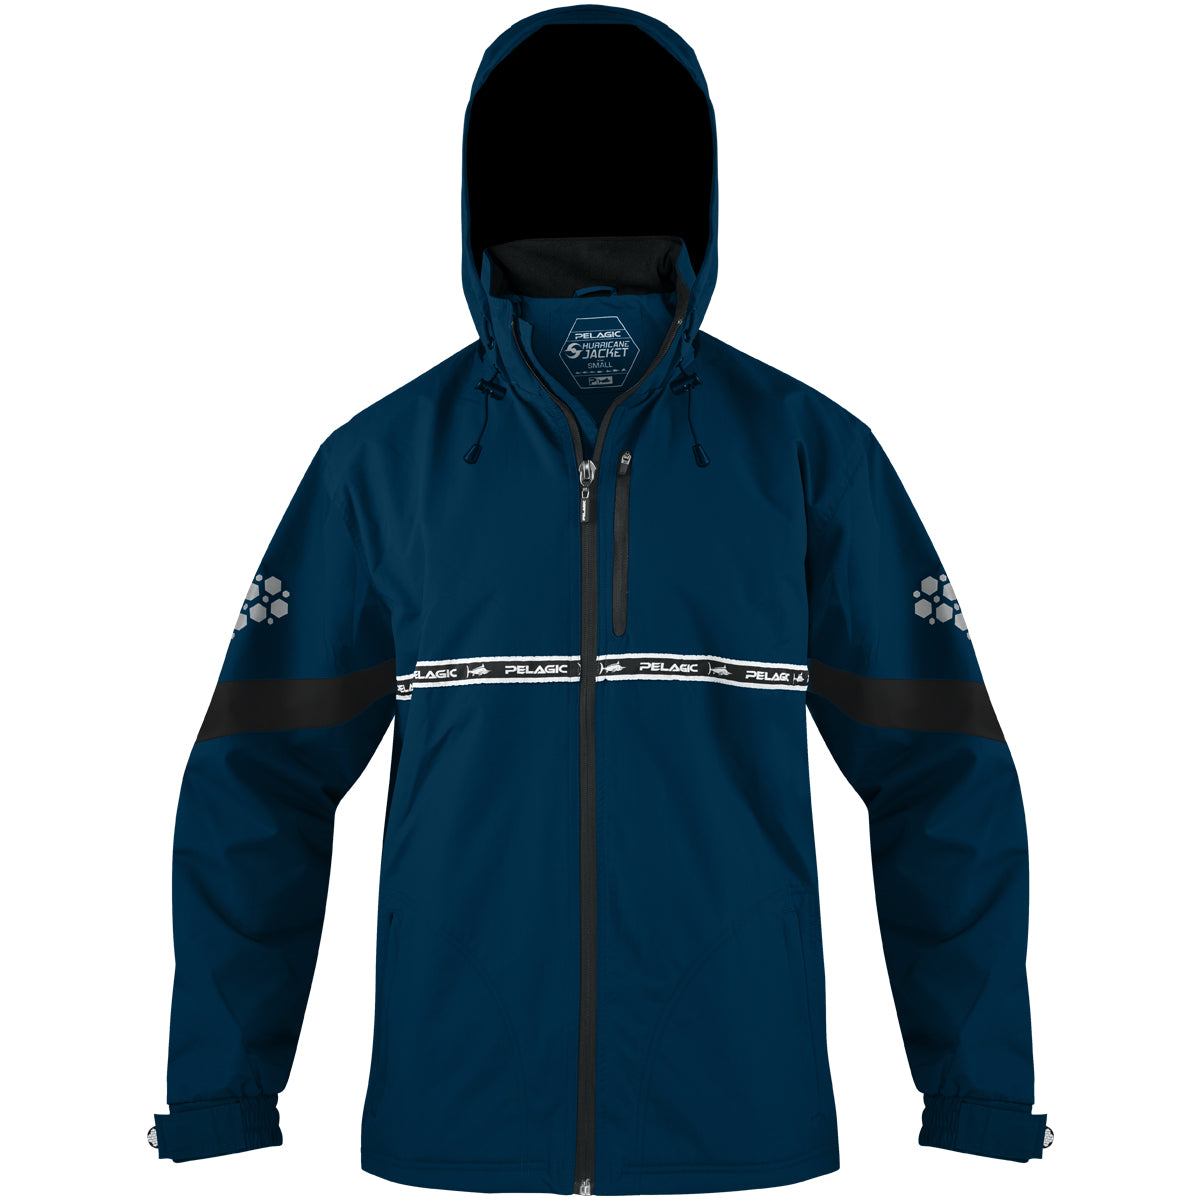 Hurricane Jacket Big Image - 2